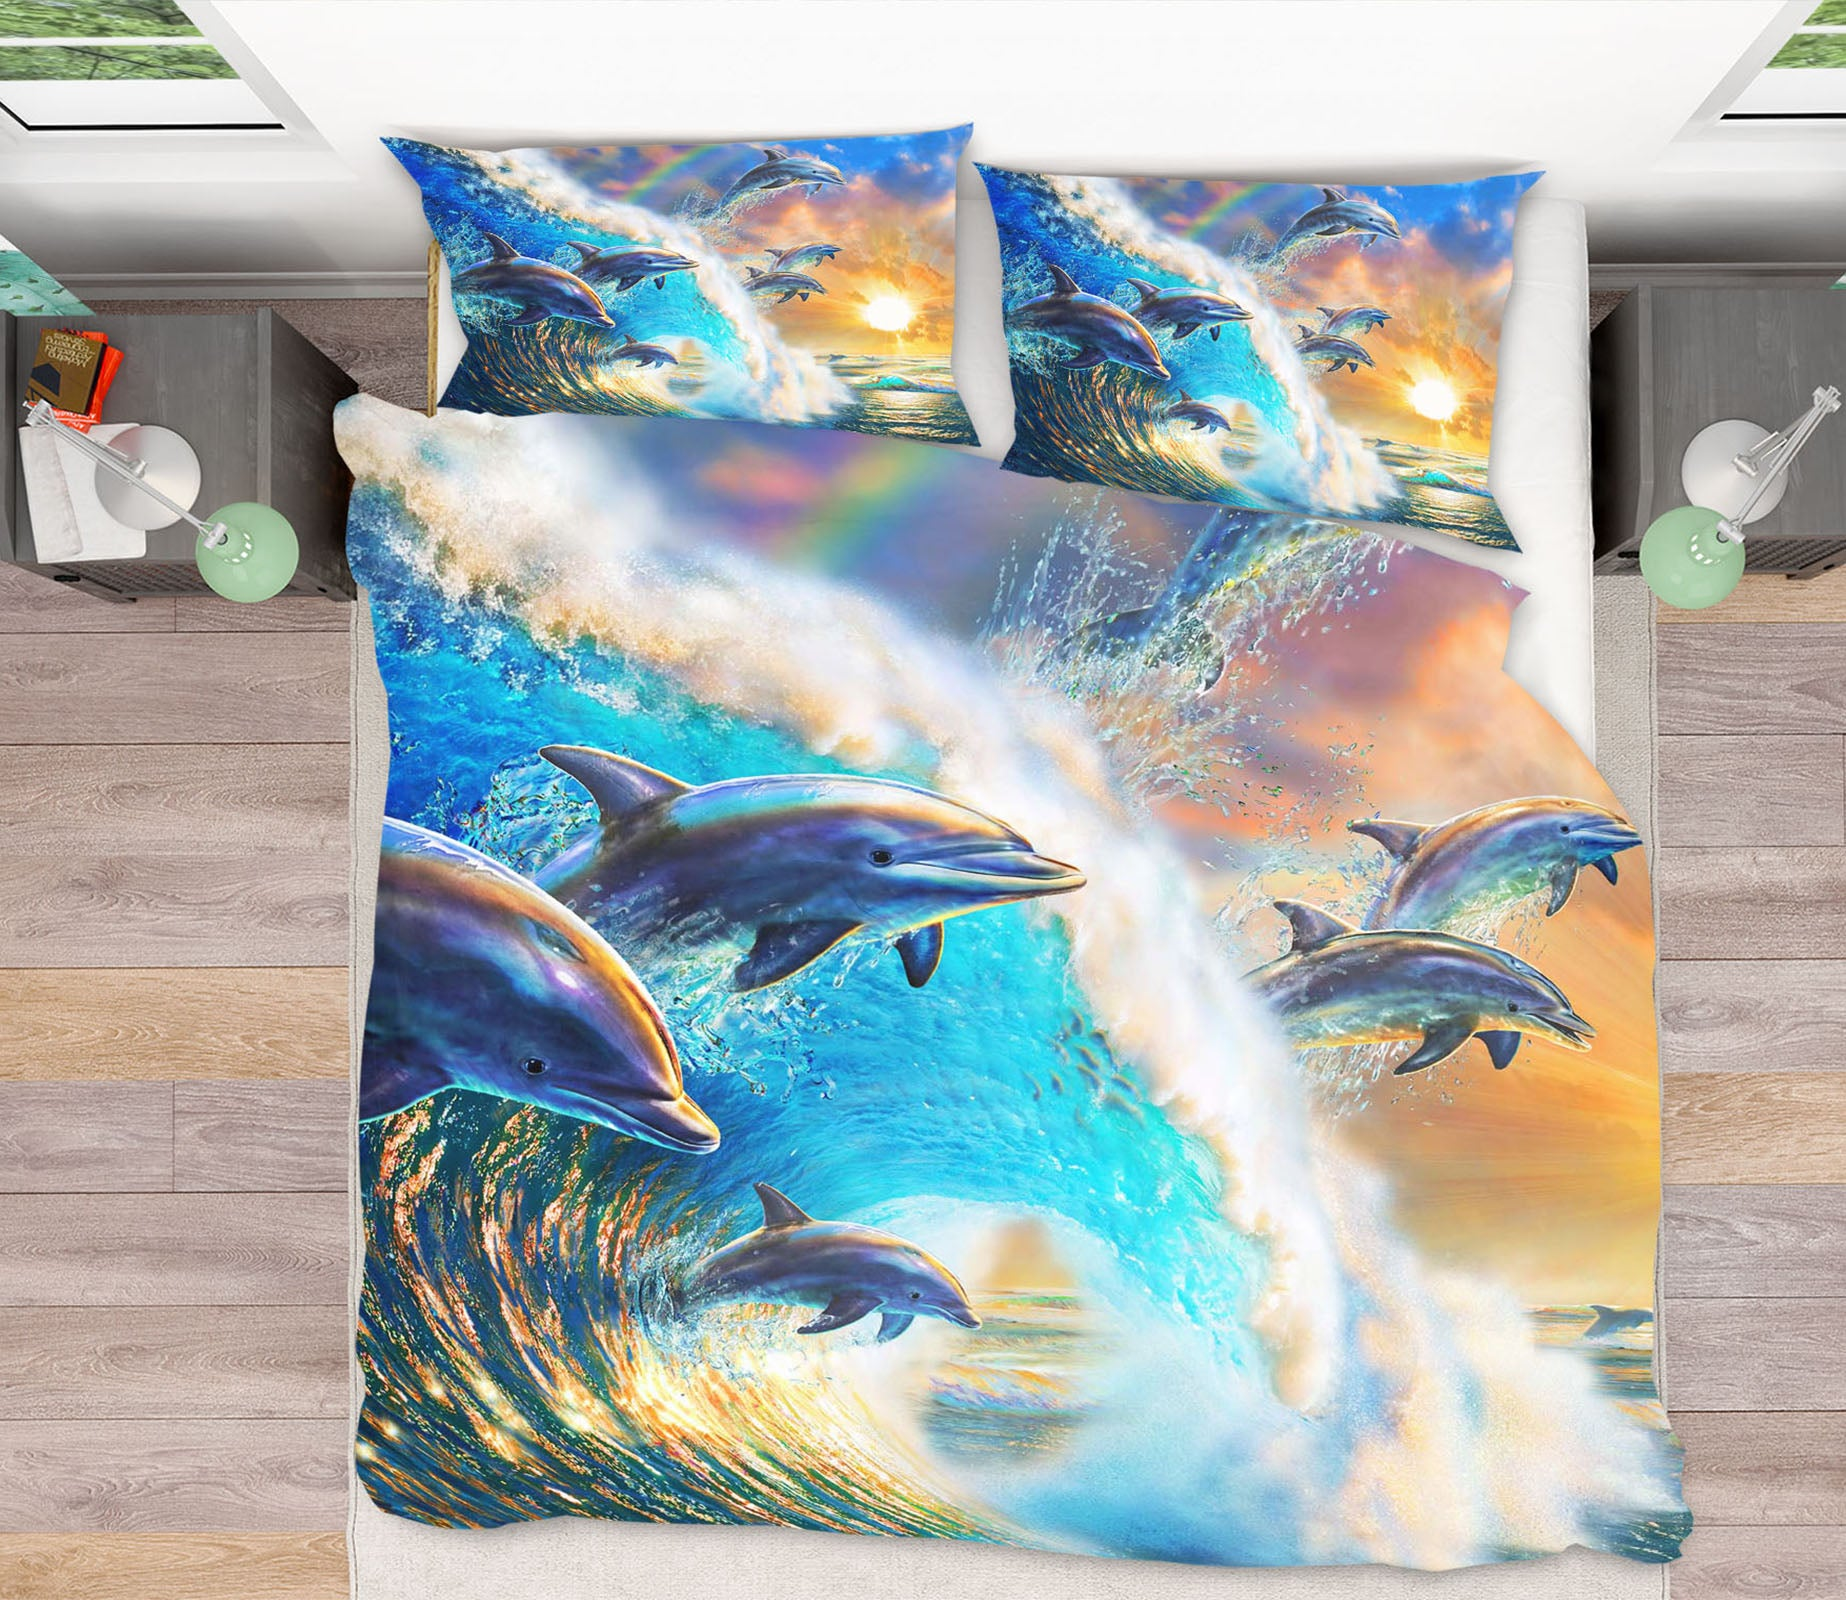 3D Dolphin Wave 2040 Adrian Chesterman Bedding Bed Pillowcases Quilt